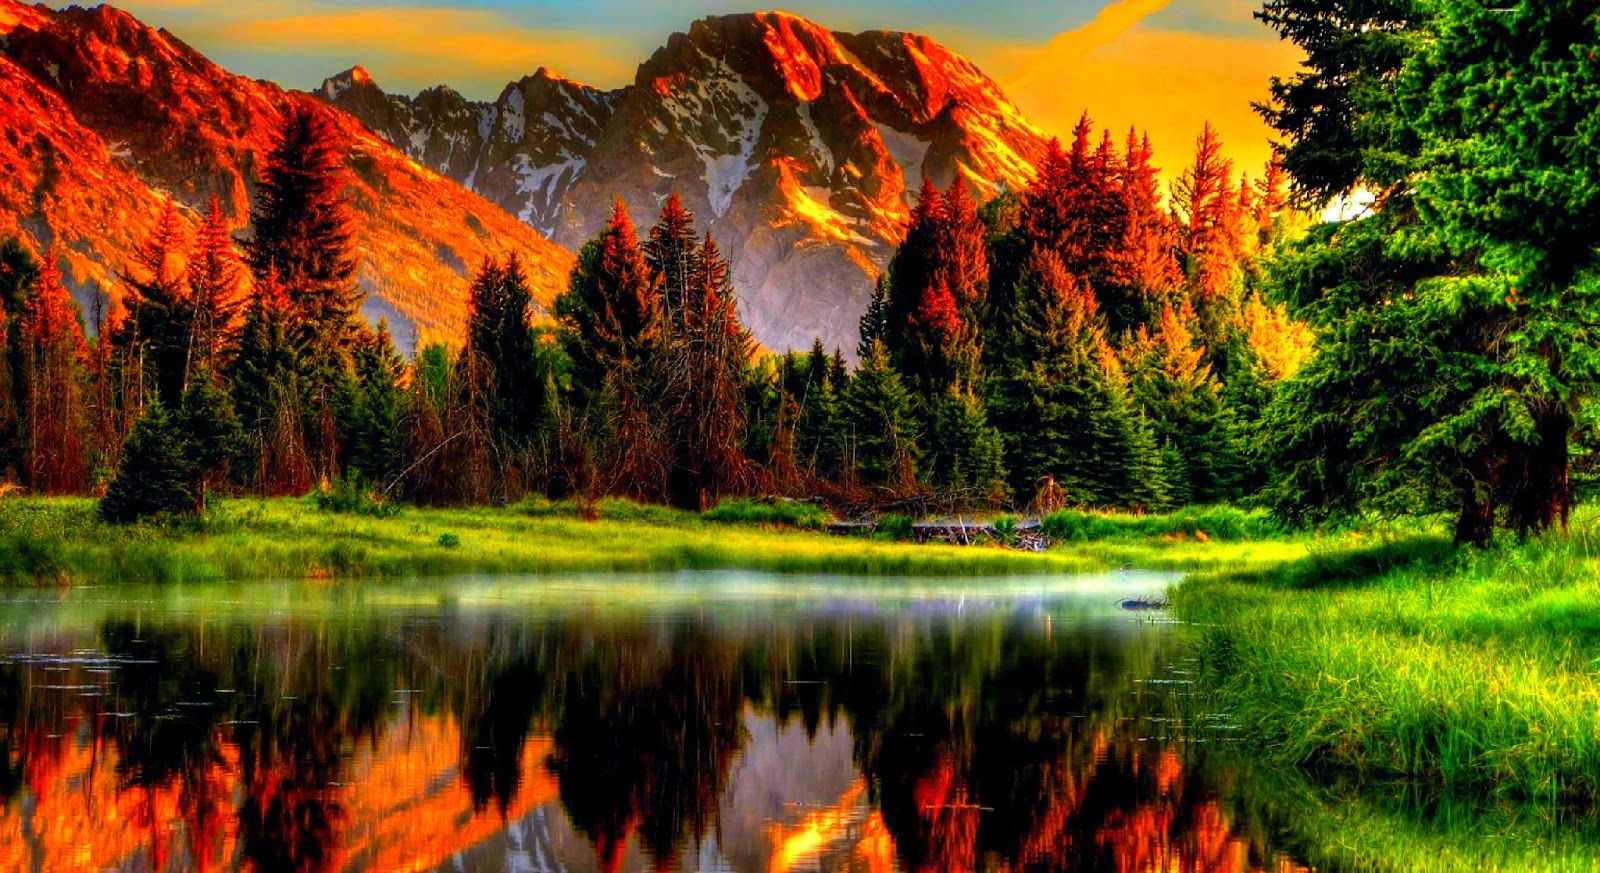 Most Beautiful Scenery The most beautiful scenery wallpapers